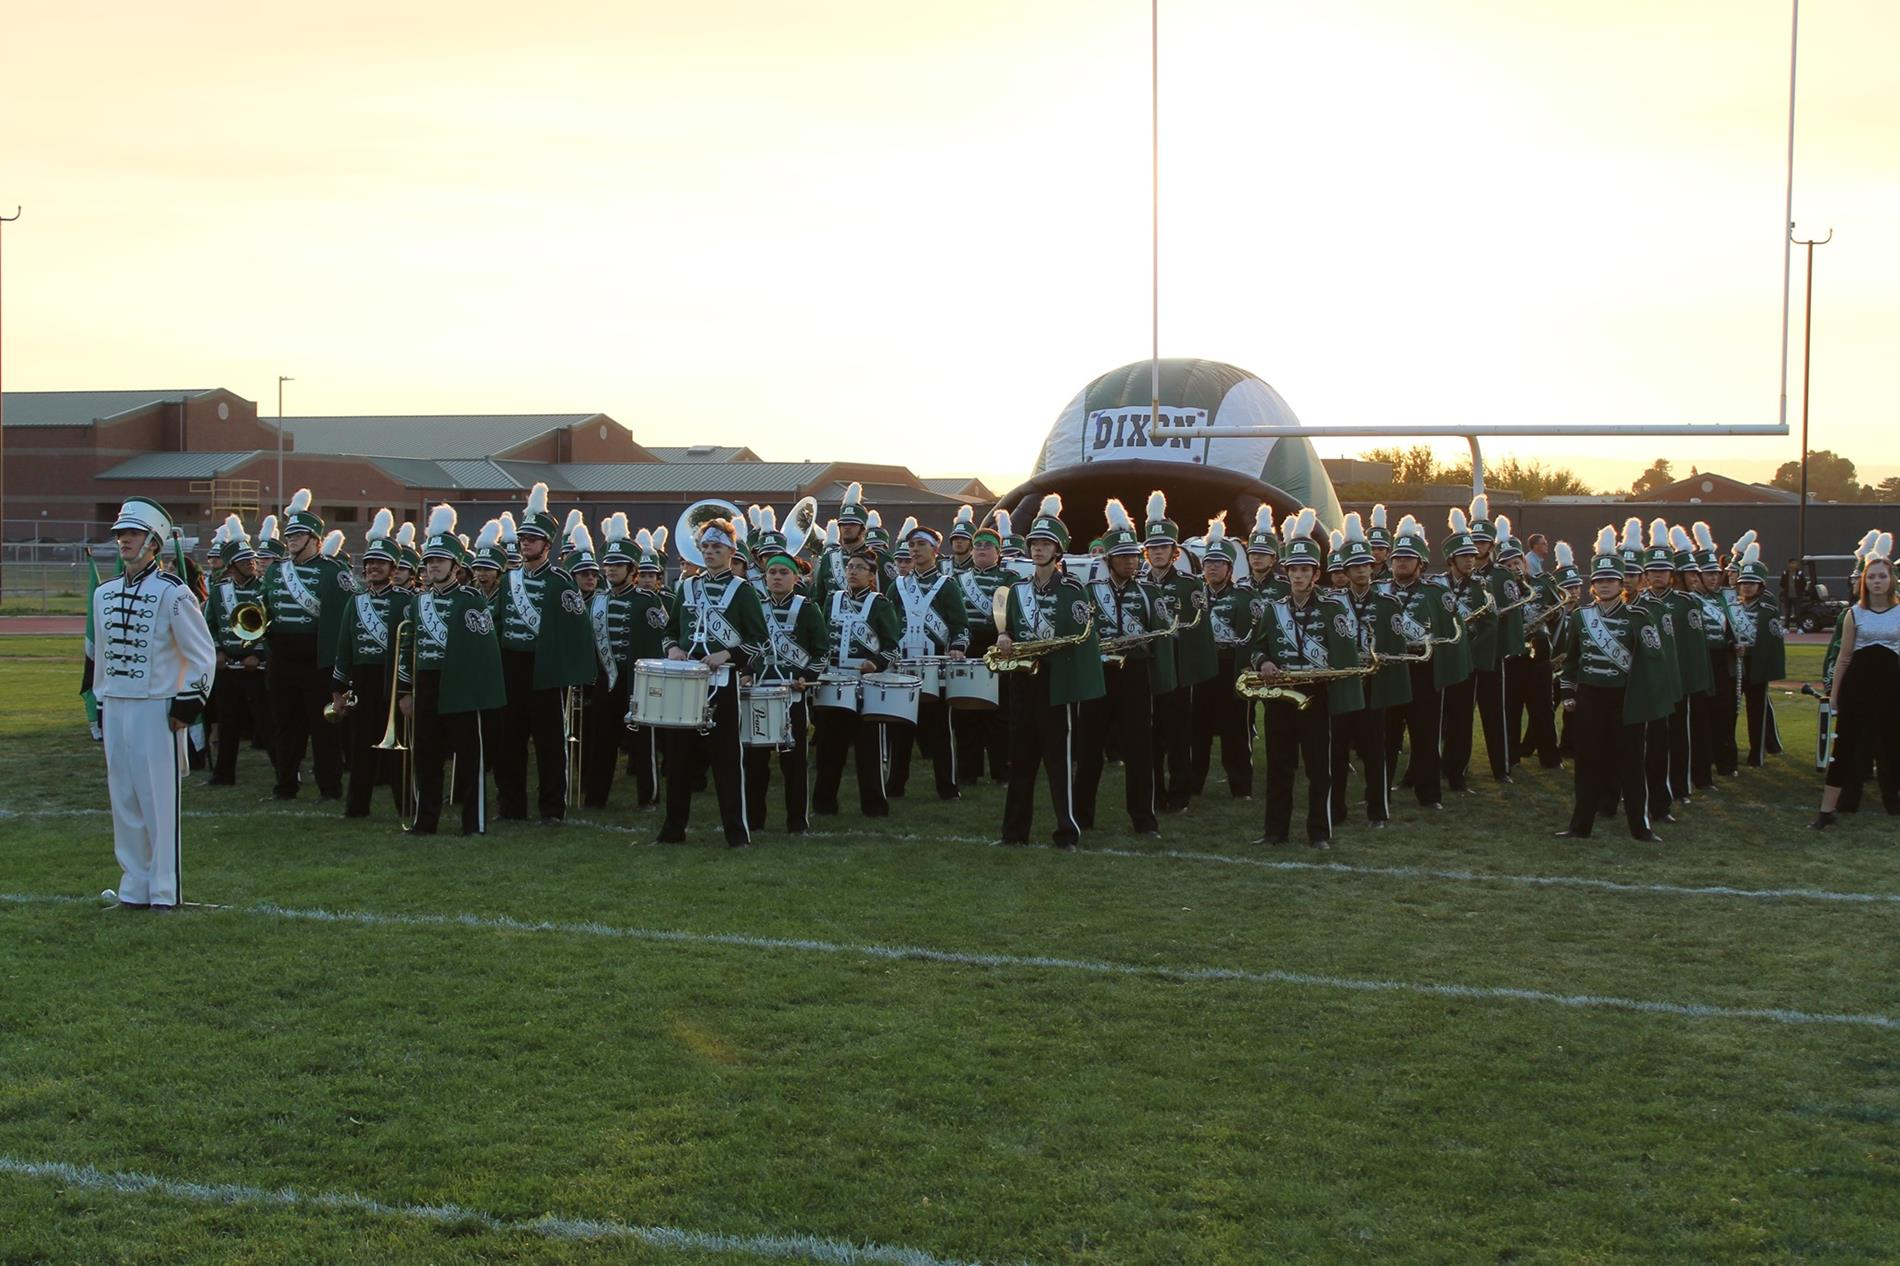 Dixon Unified School District Band